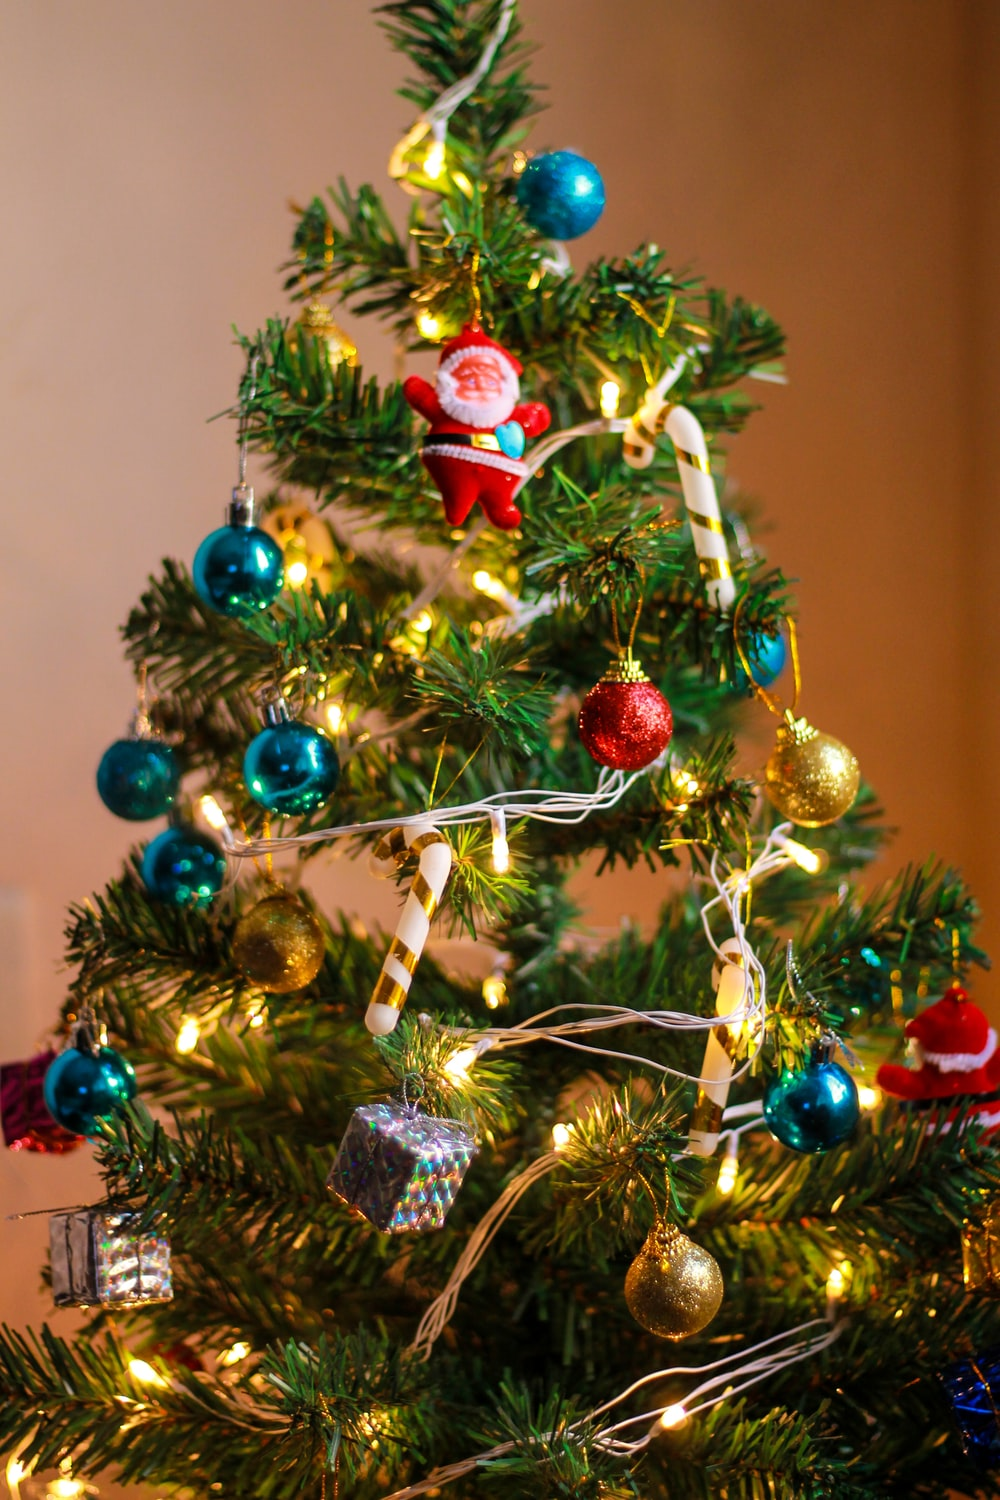 selective focus photography of baubles hanged on Christmas tree